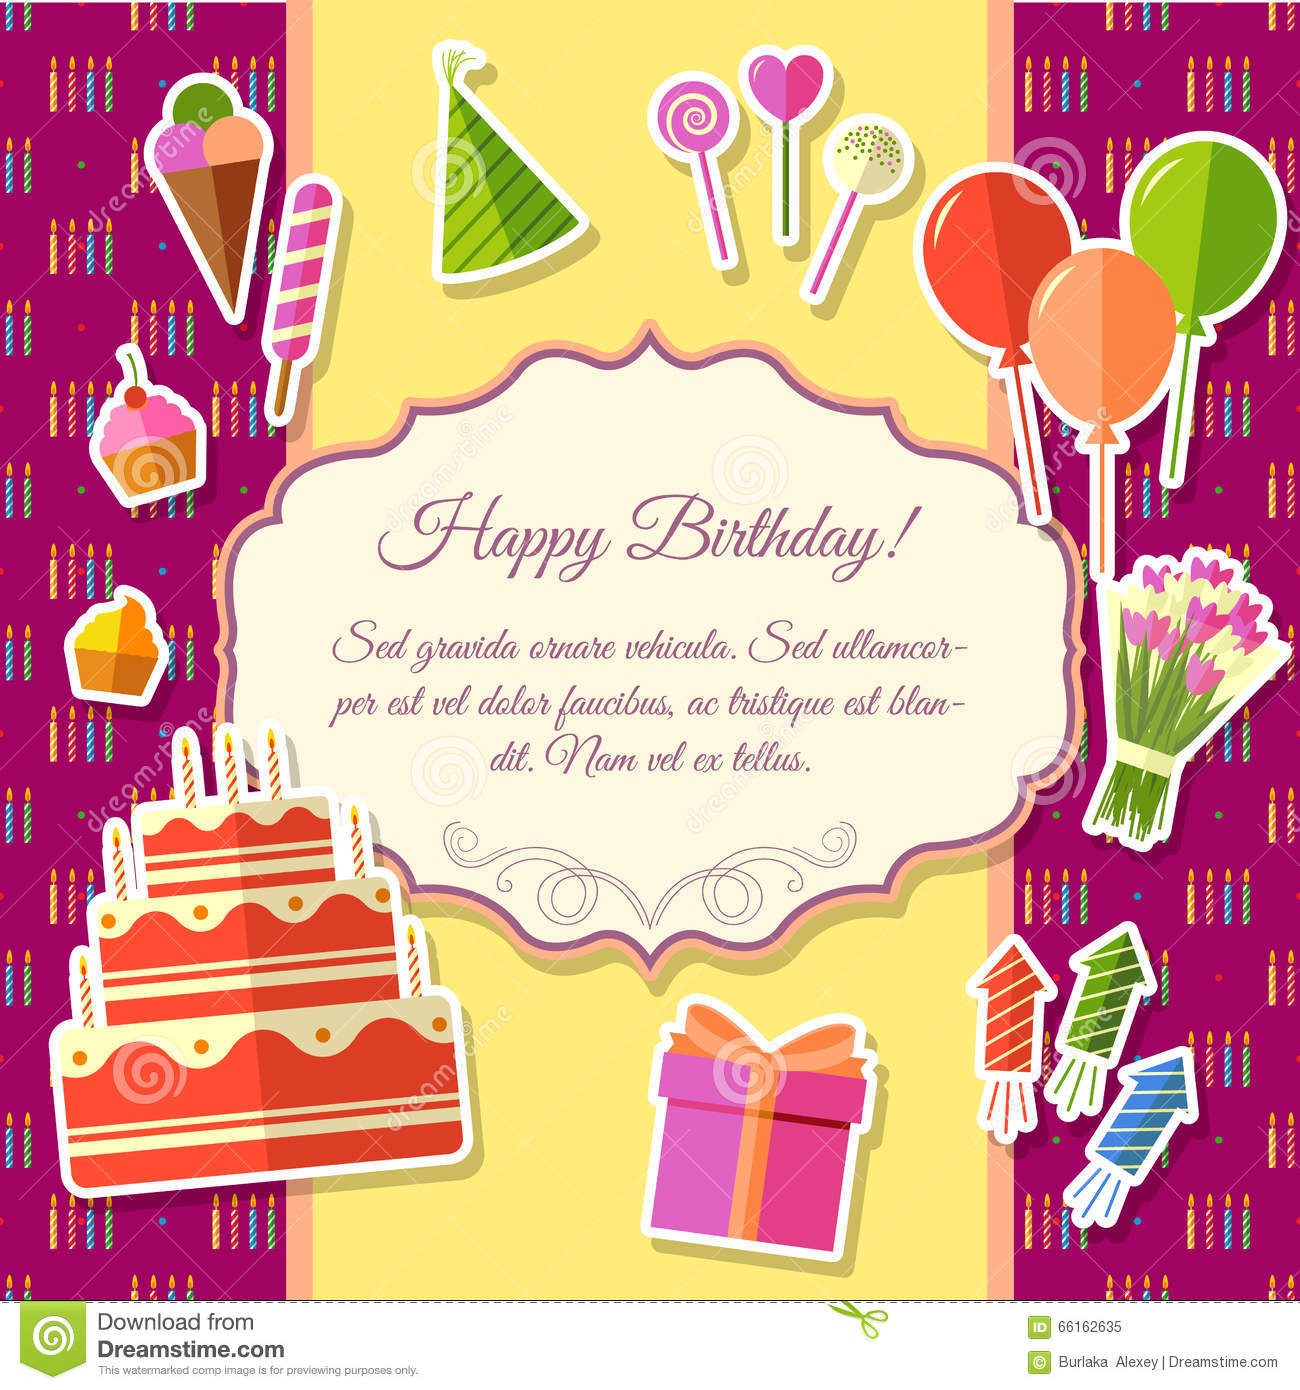 B day poster designs - Happy Birthday Festive Elements On Pink Background Poster In Sticker Style Design Vector Illustration Template